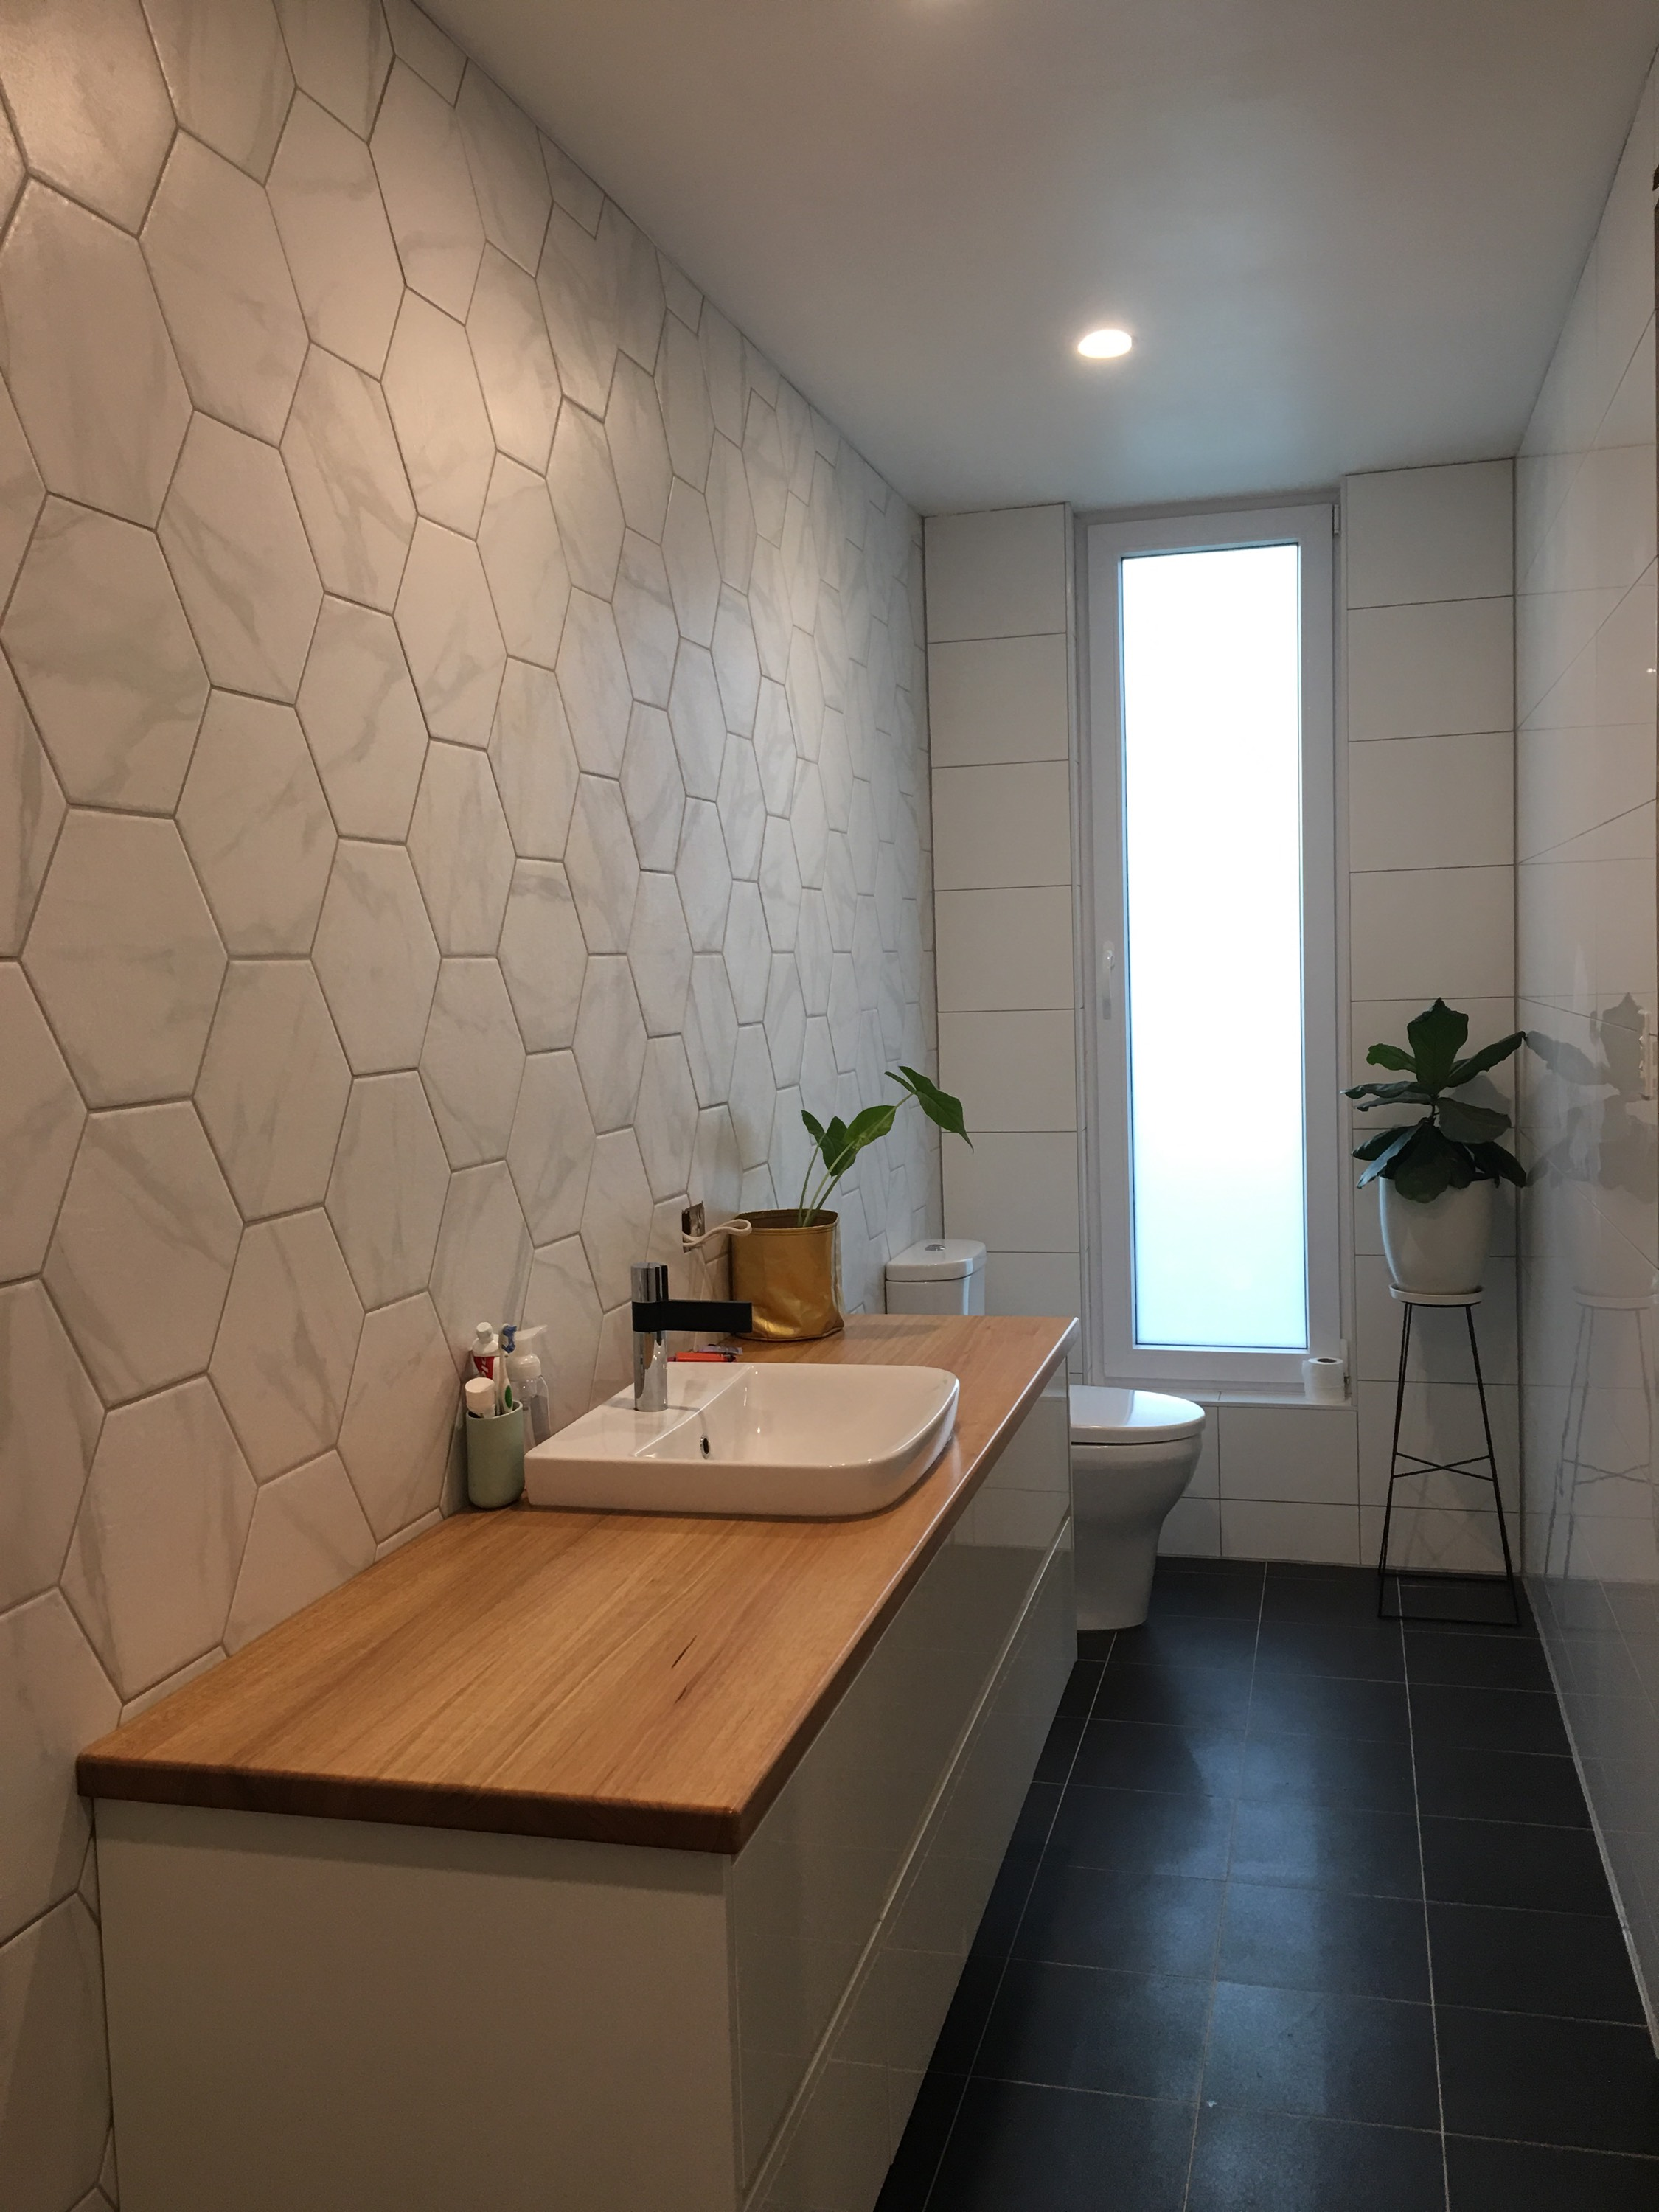 Alchemists - A new ensuite in an extension, a lovely spacious room